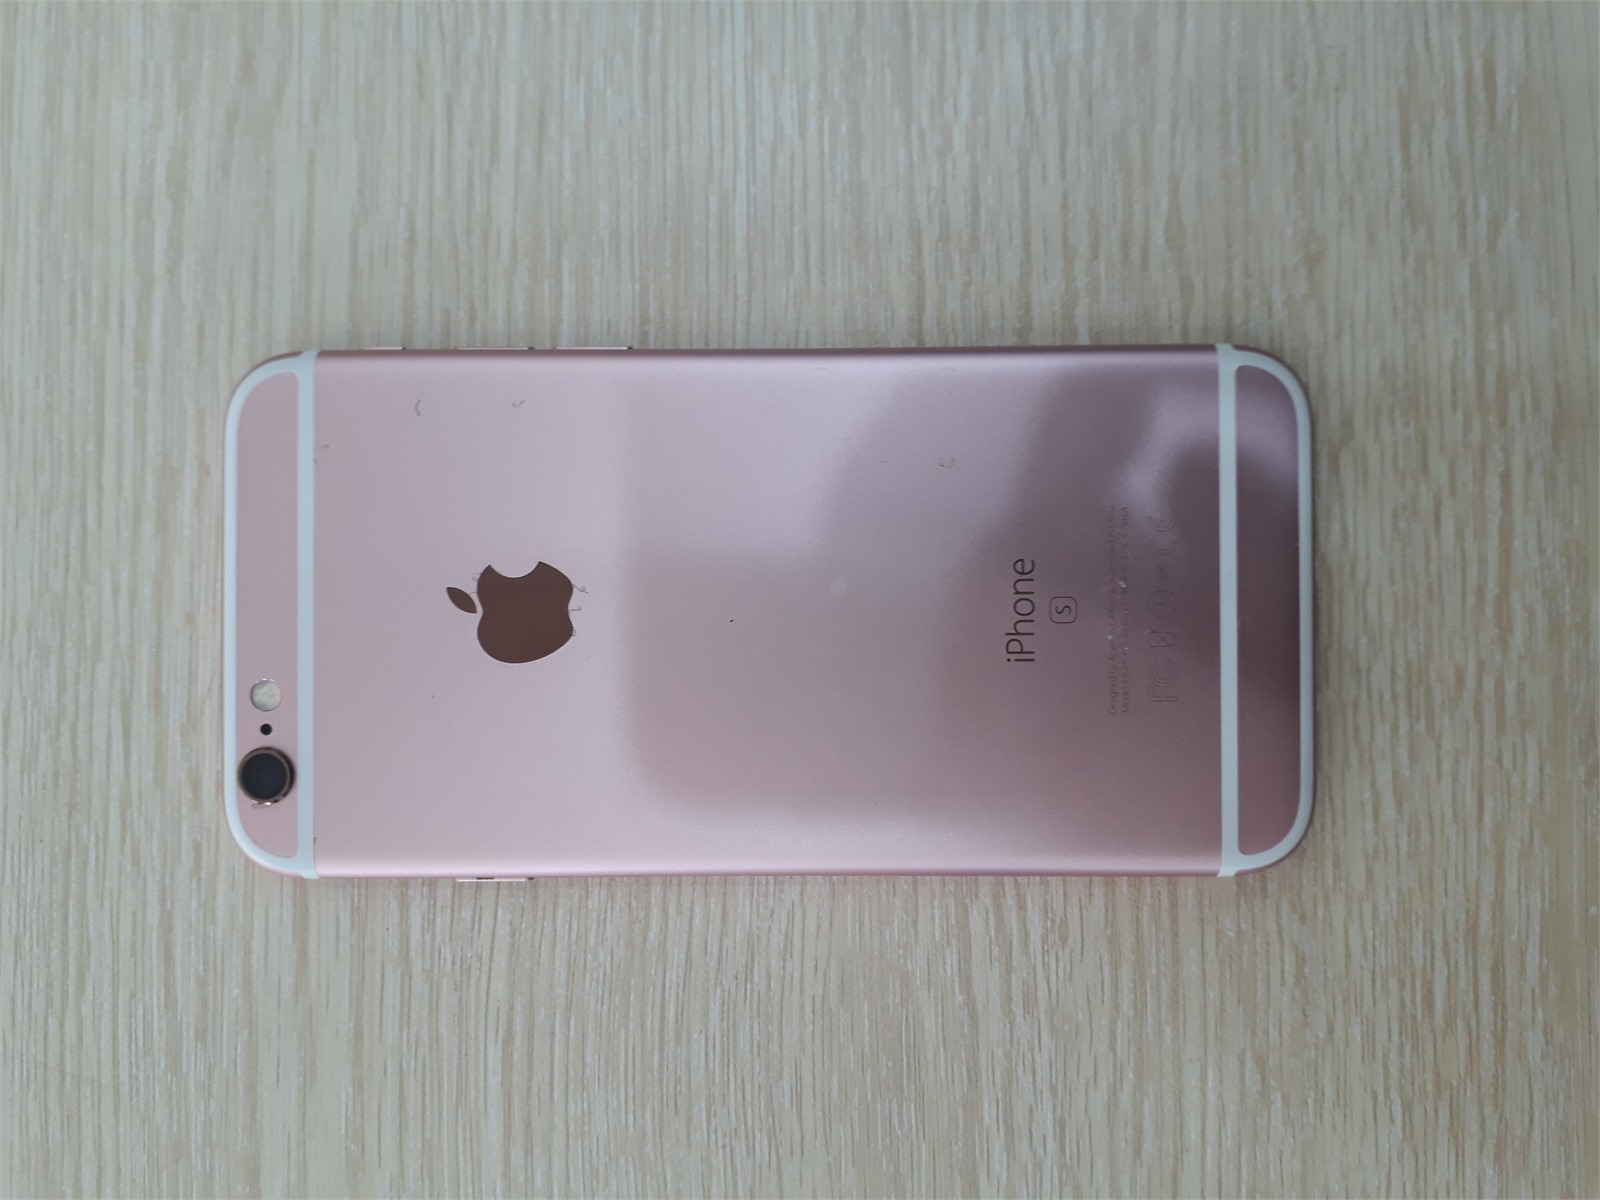 Apple ĐTDĐ iPhone 6s demo 16GB Rose Gold (A1688)_ 3A503VN/A